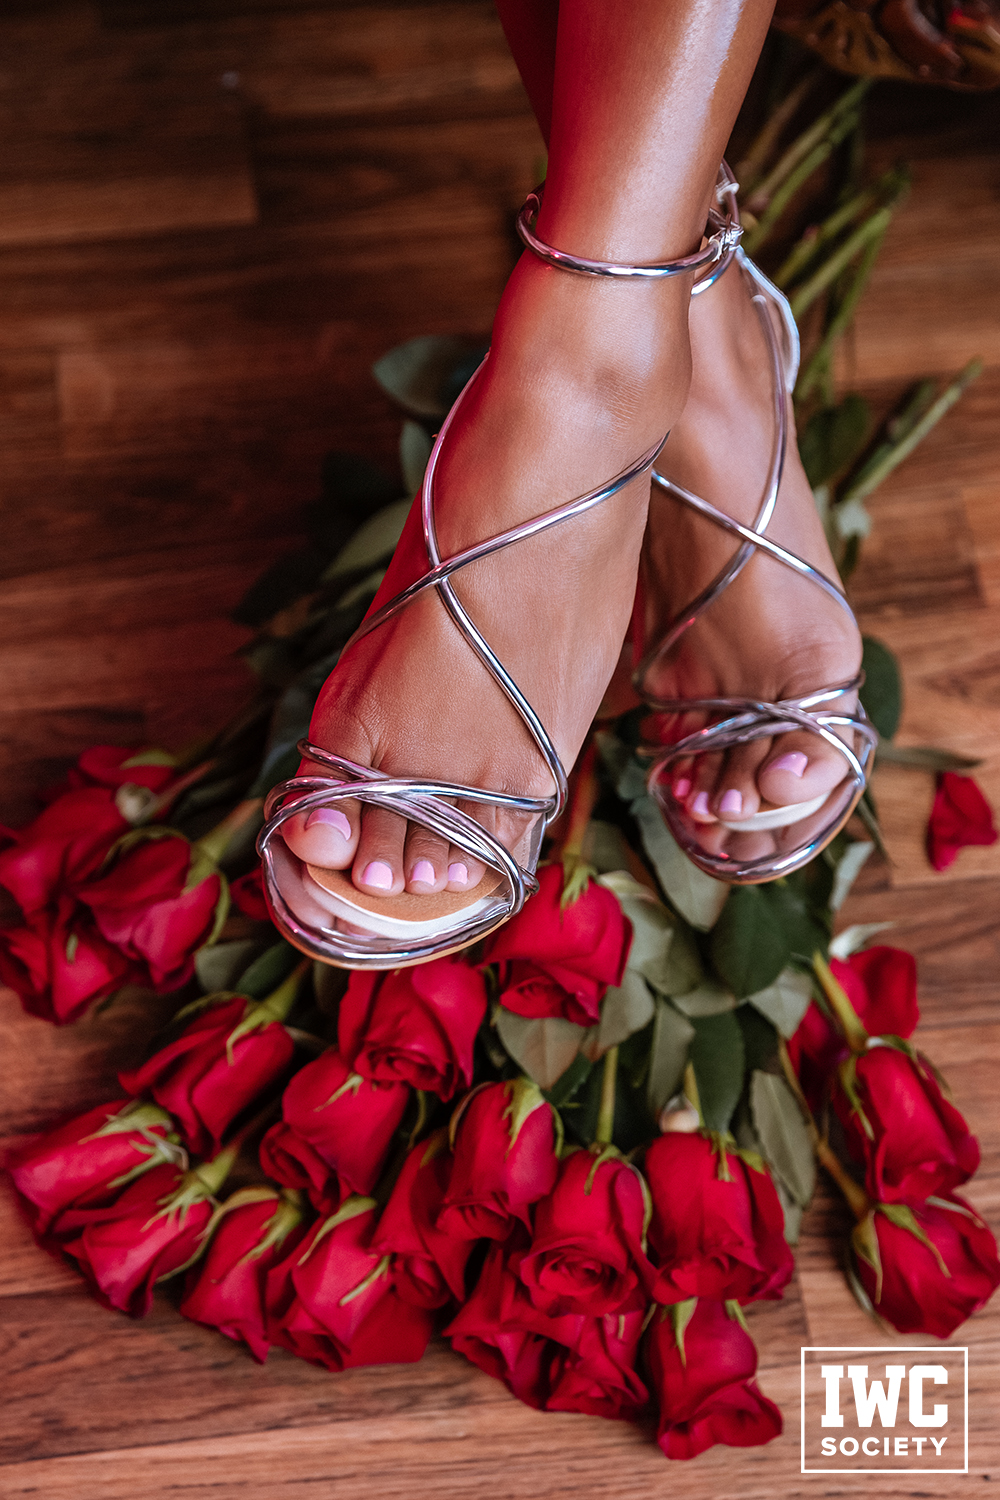 Women's feet stepping on roses with ankles crossed in sandals